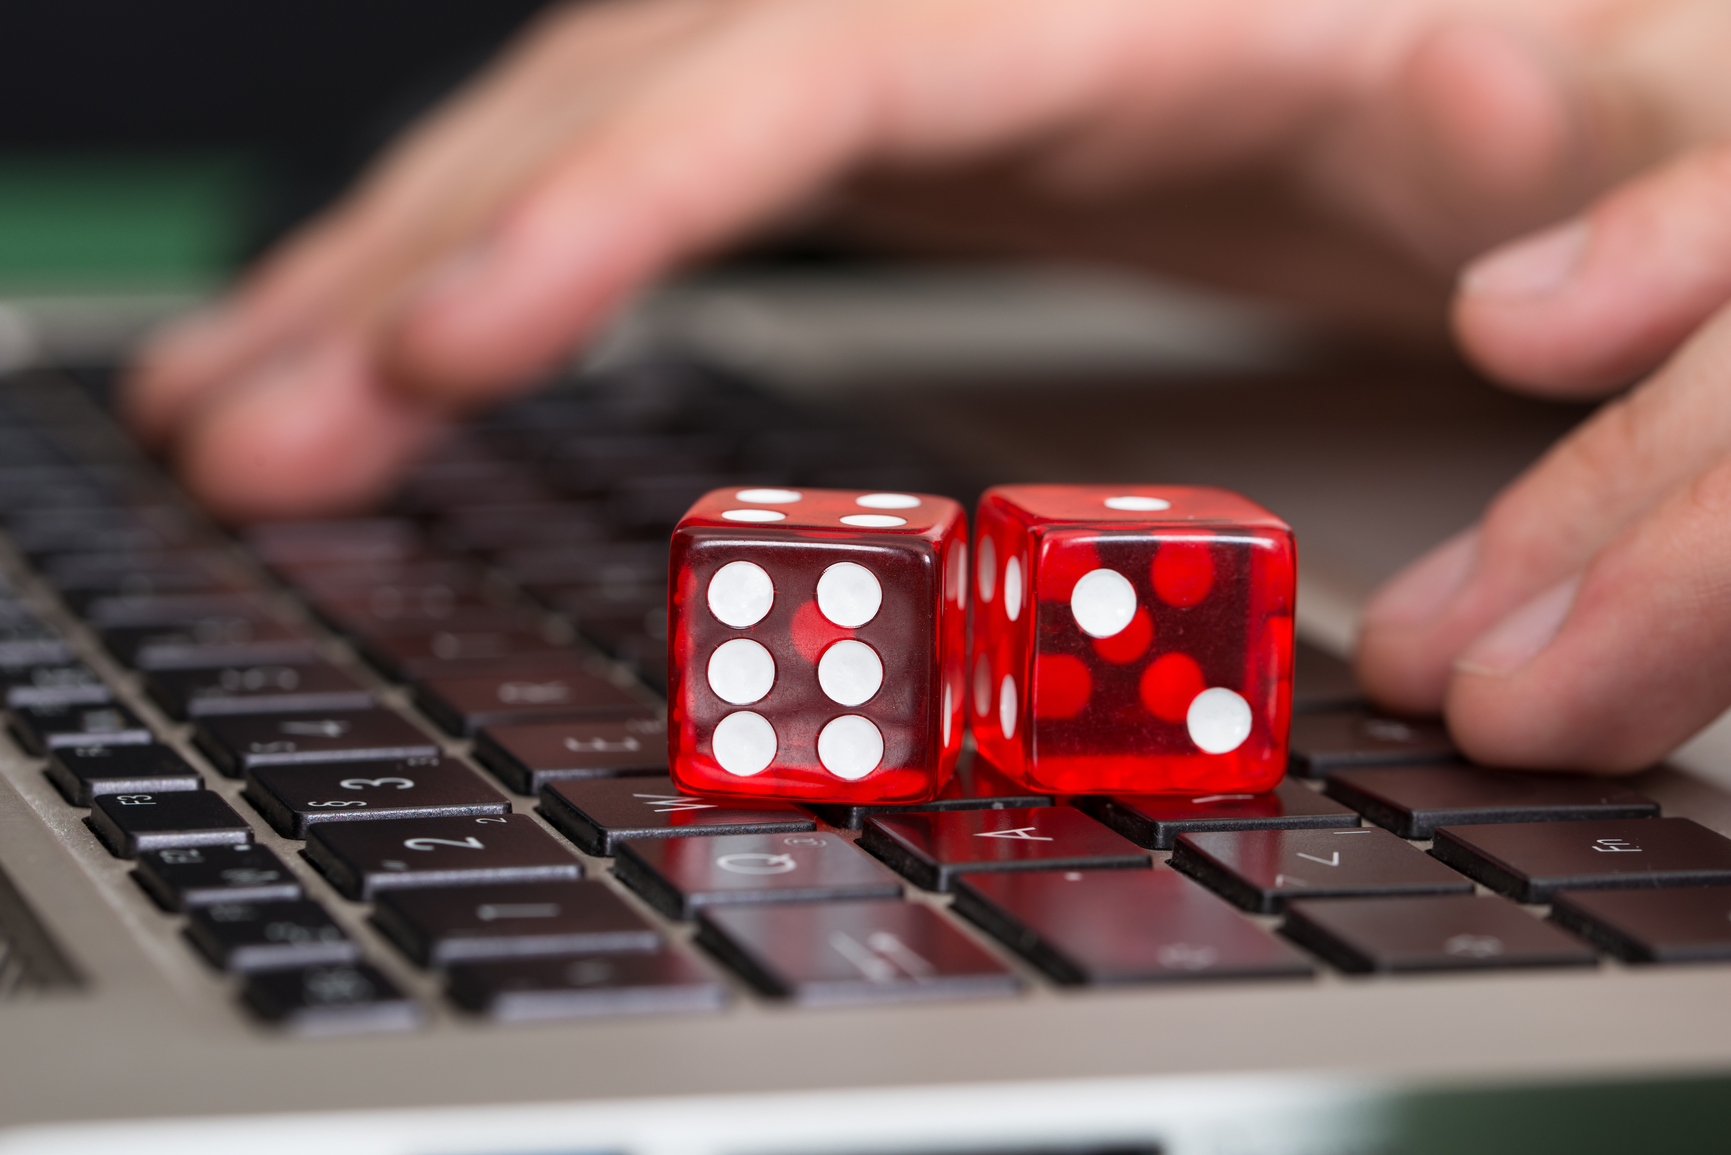 Relish Benefits of Ceme Judi Platform for Playing Online Gambling